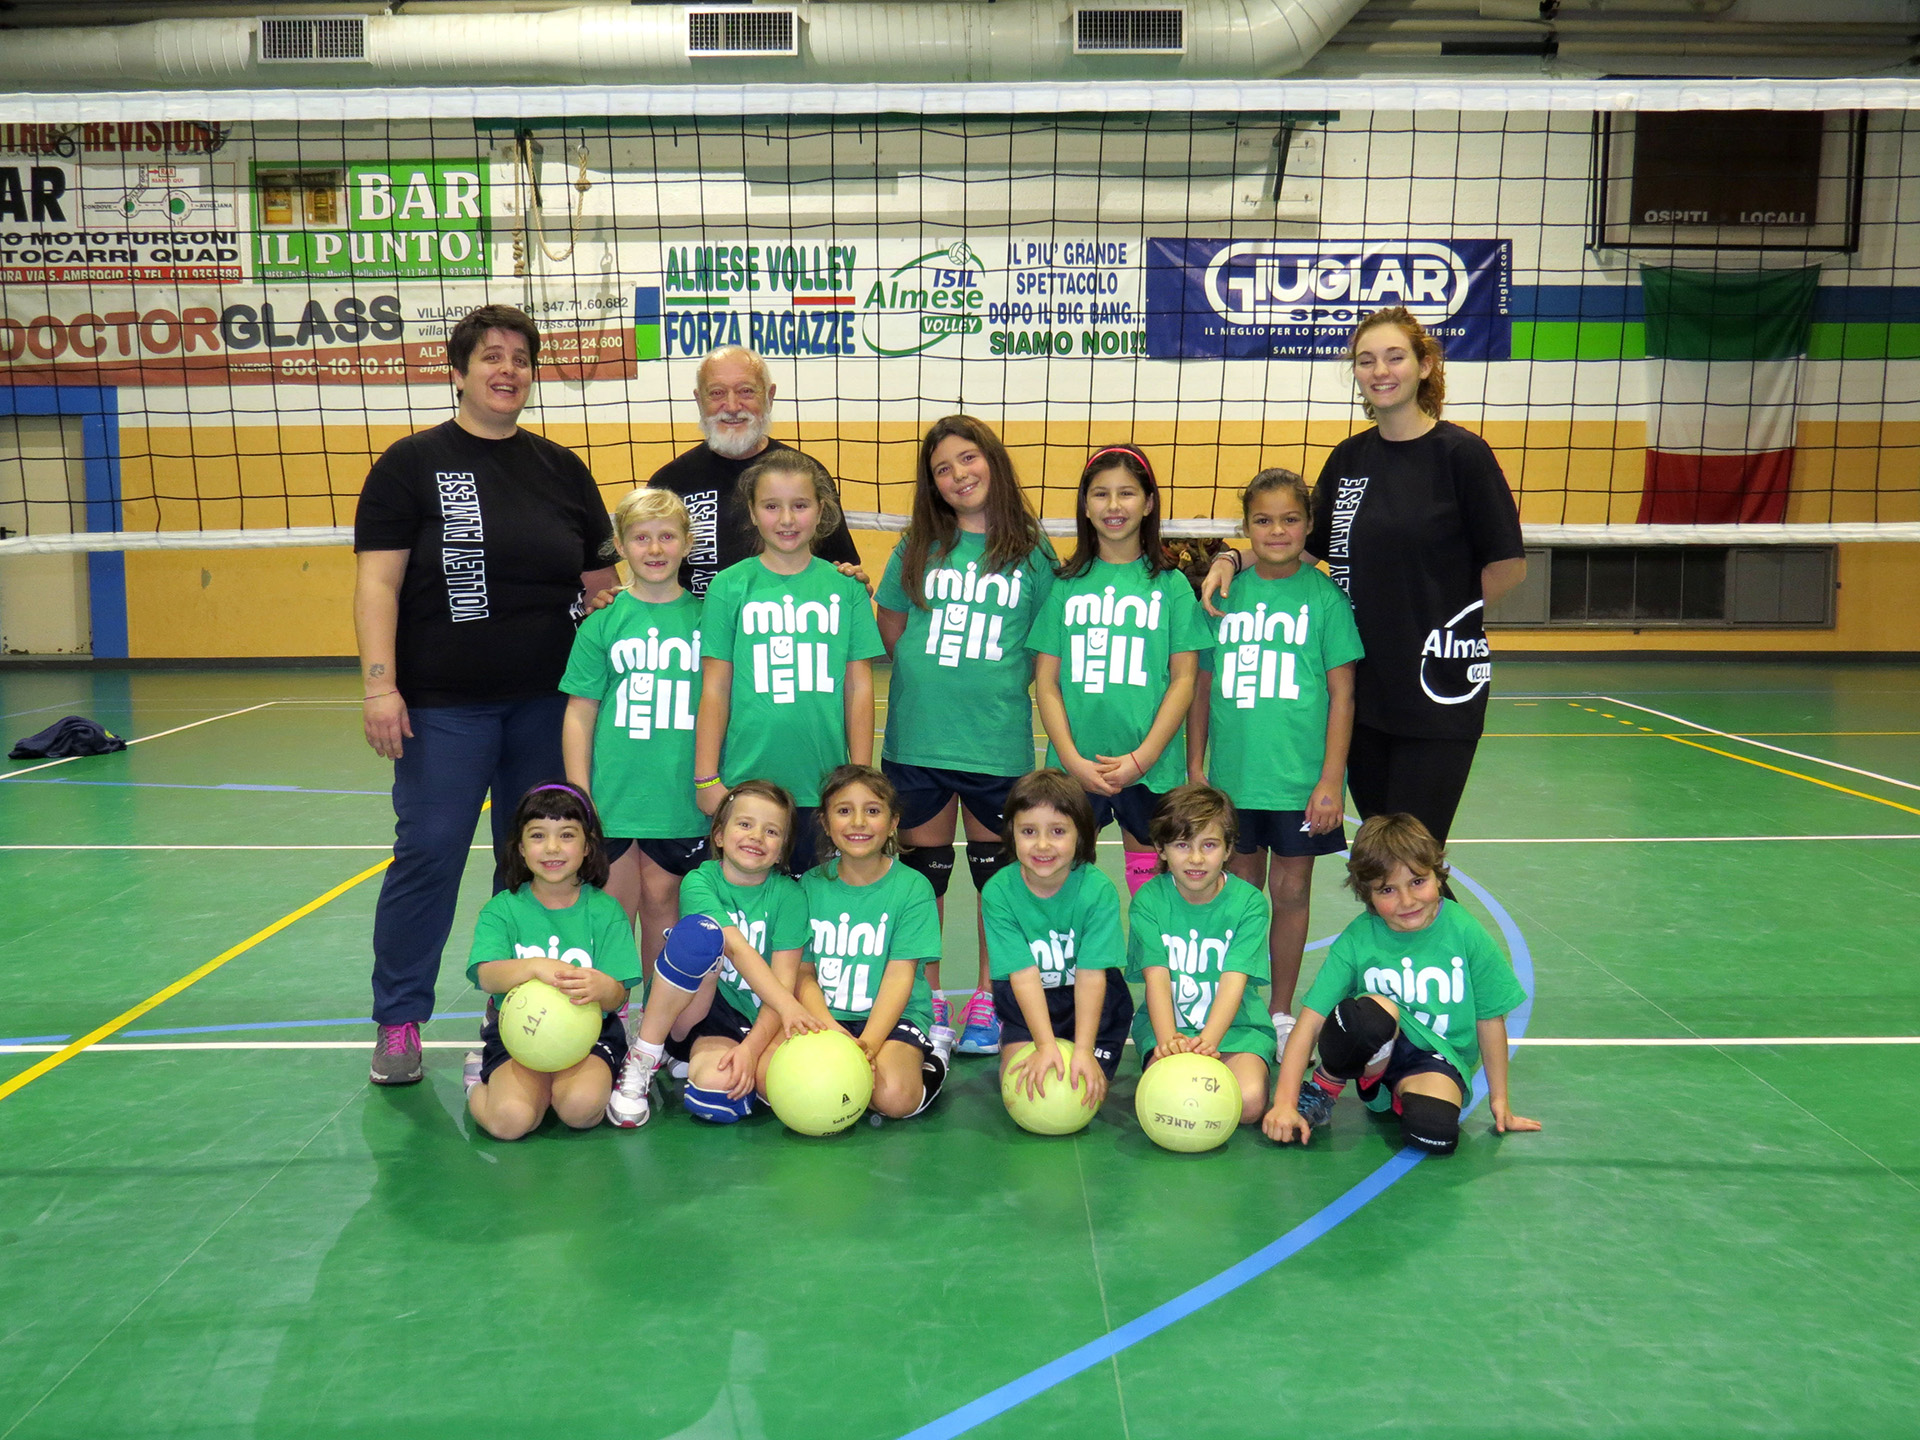 Minivolley Almese